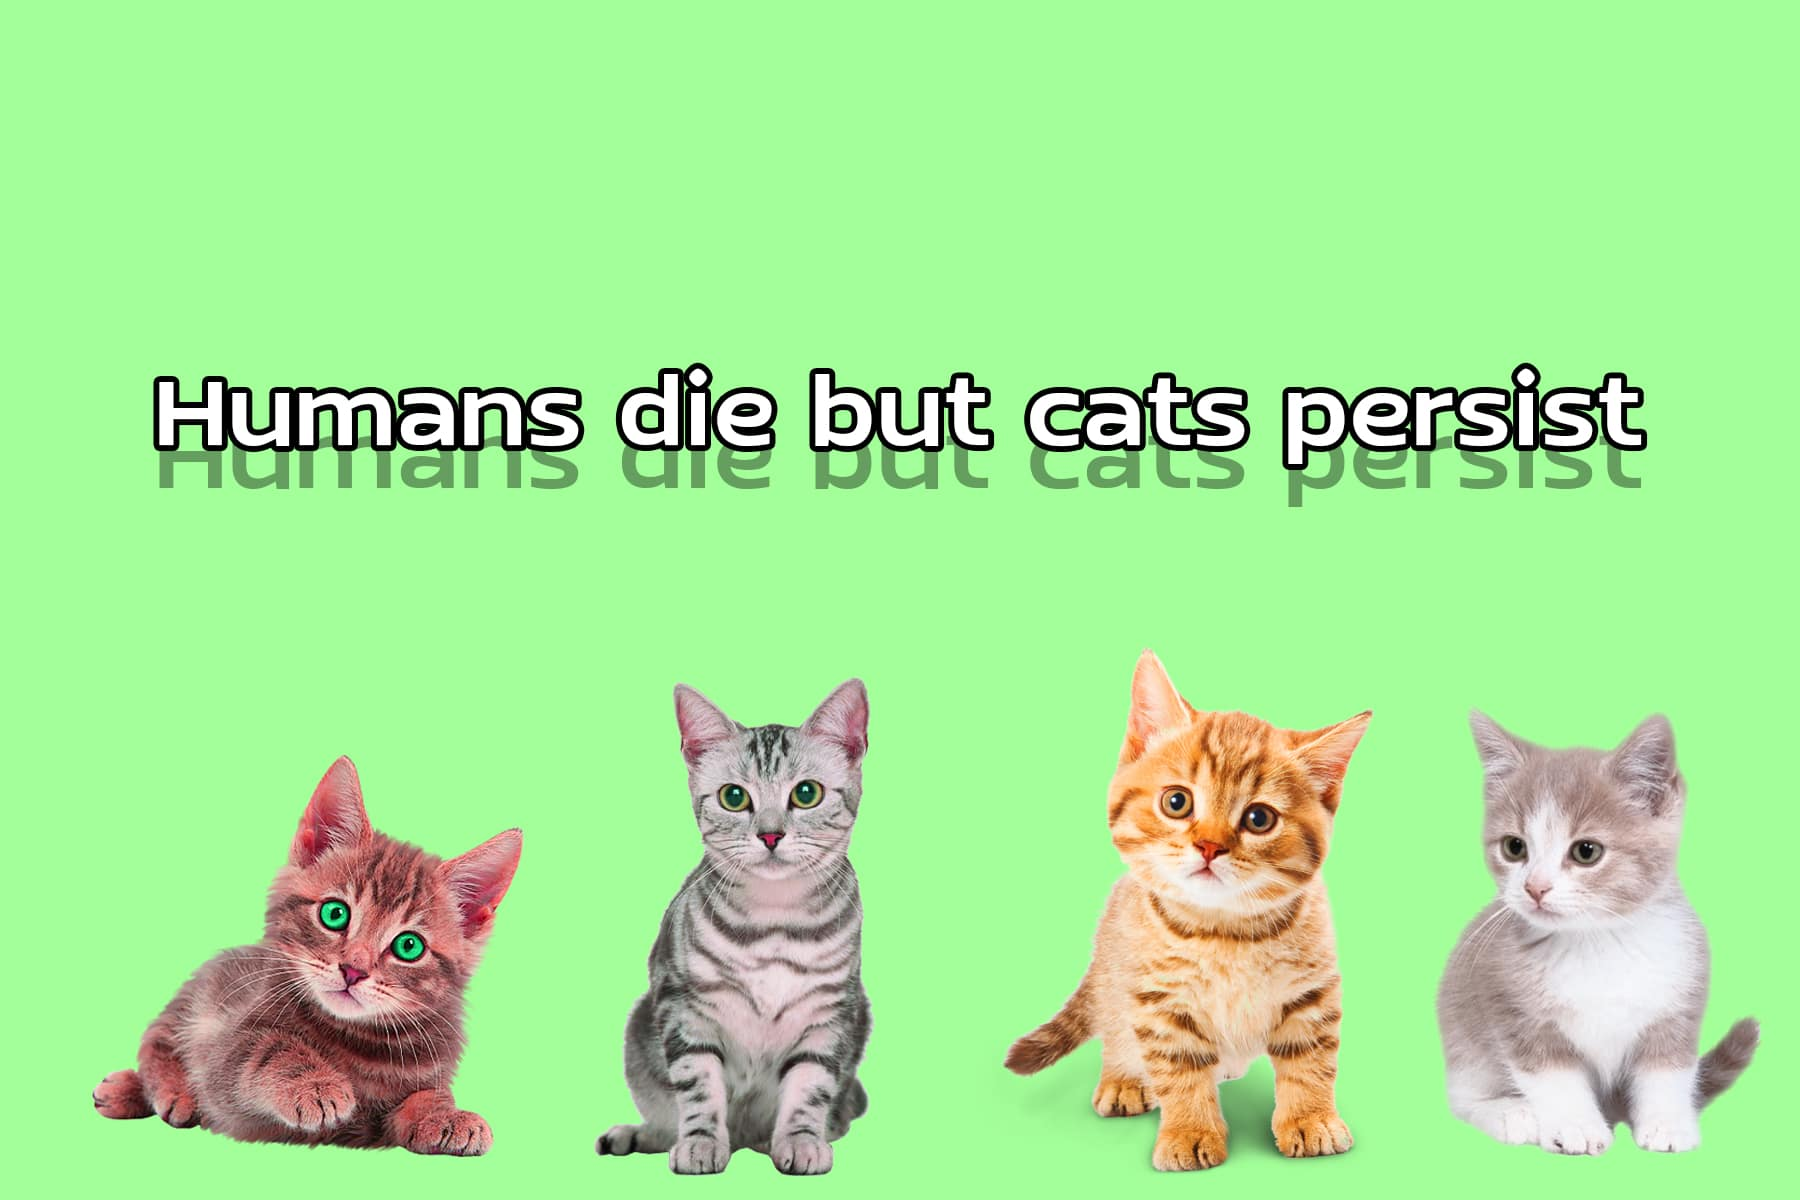 Humans die but cats persist